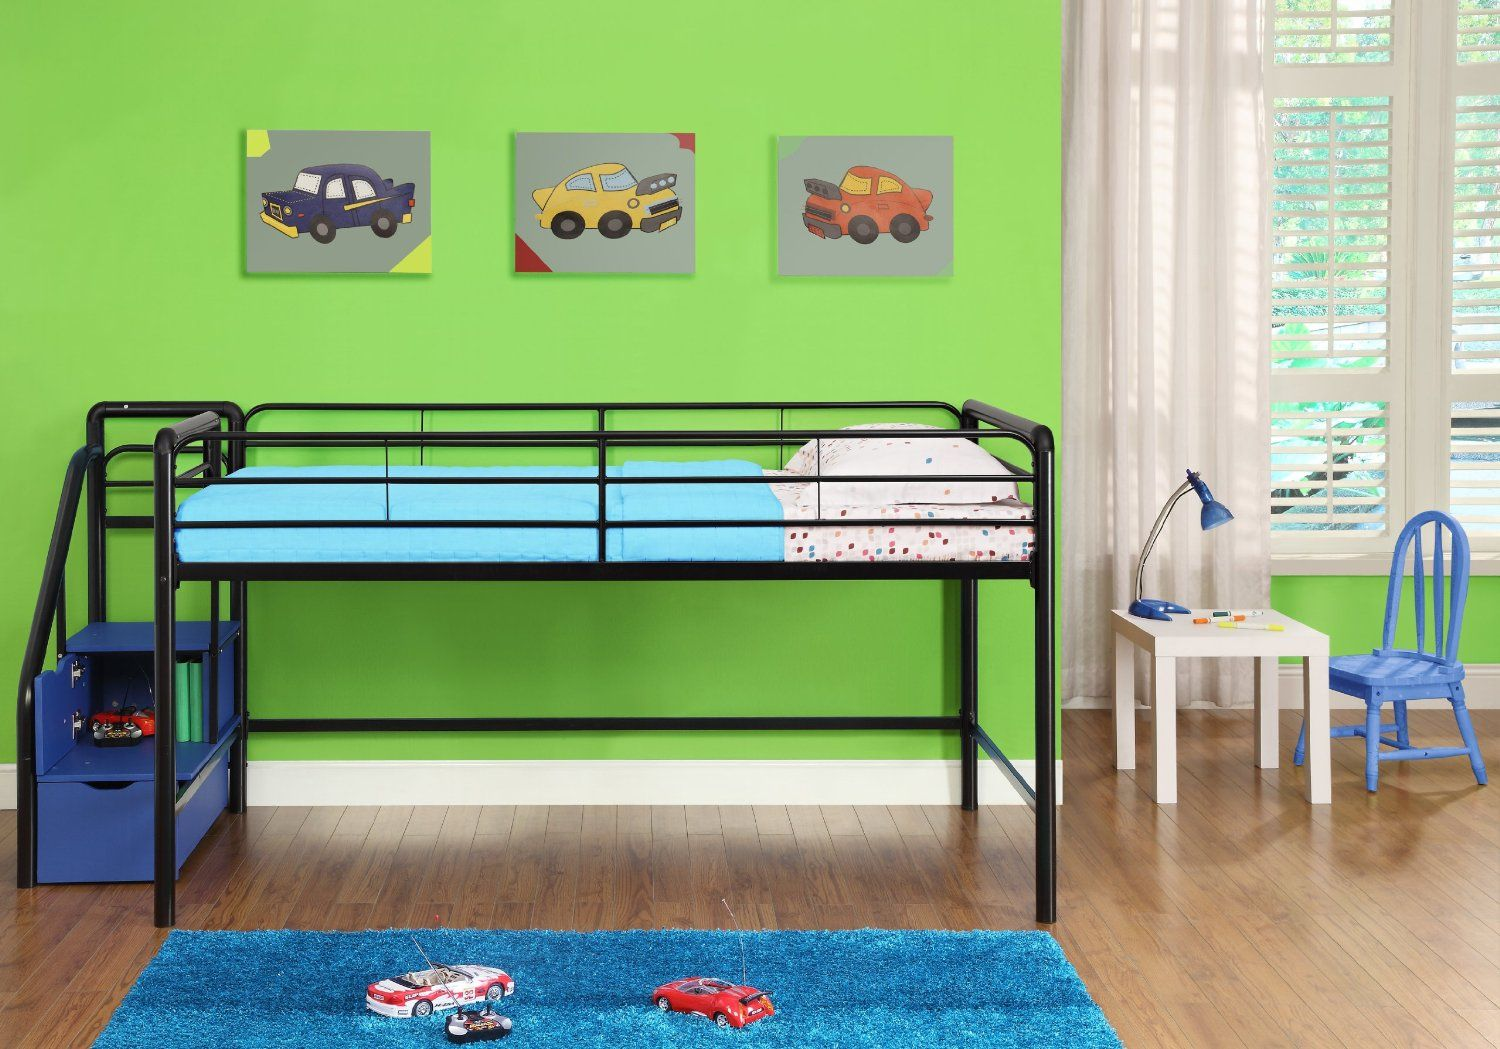 Best Low Loft Beds And Bunk Beds For Toddlers Kids In 2020 400 x 300